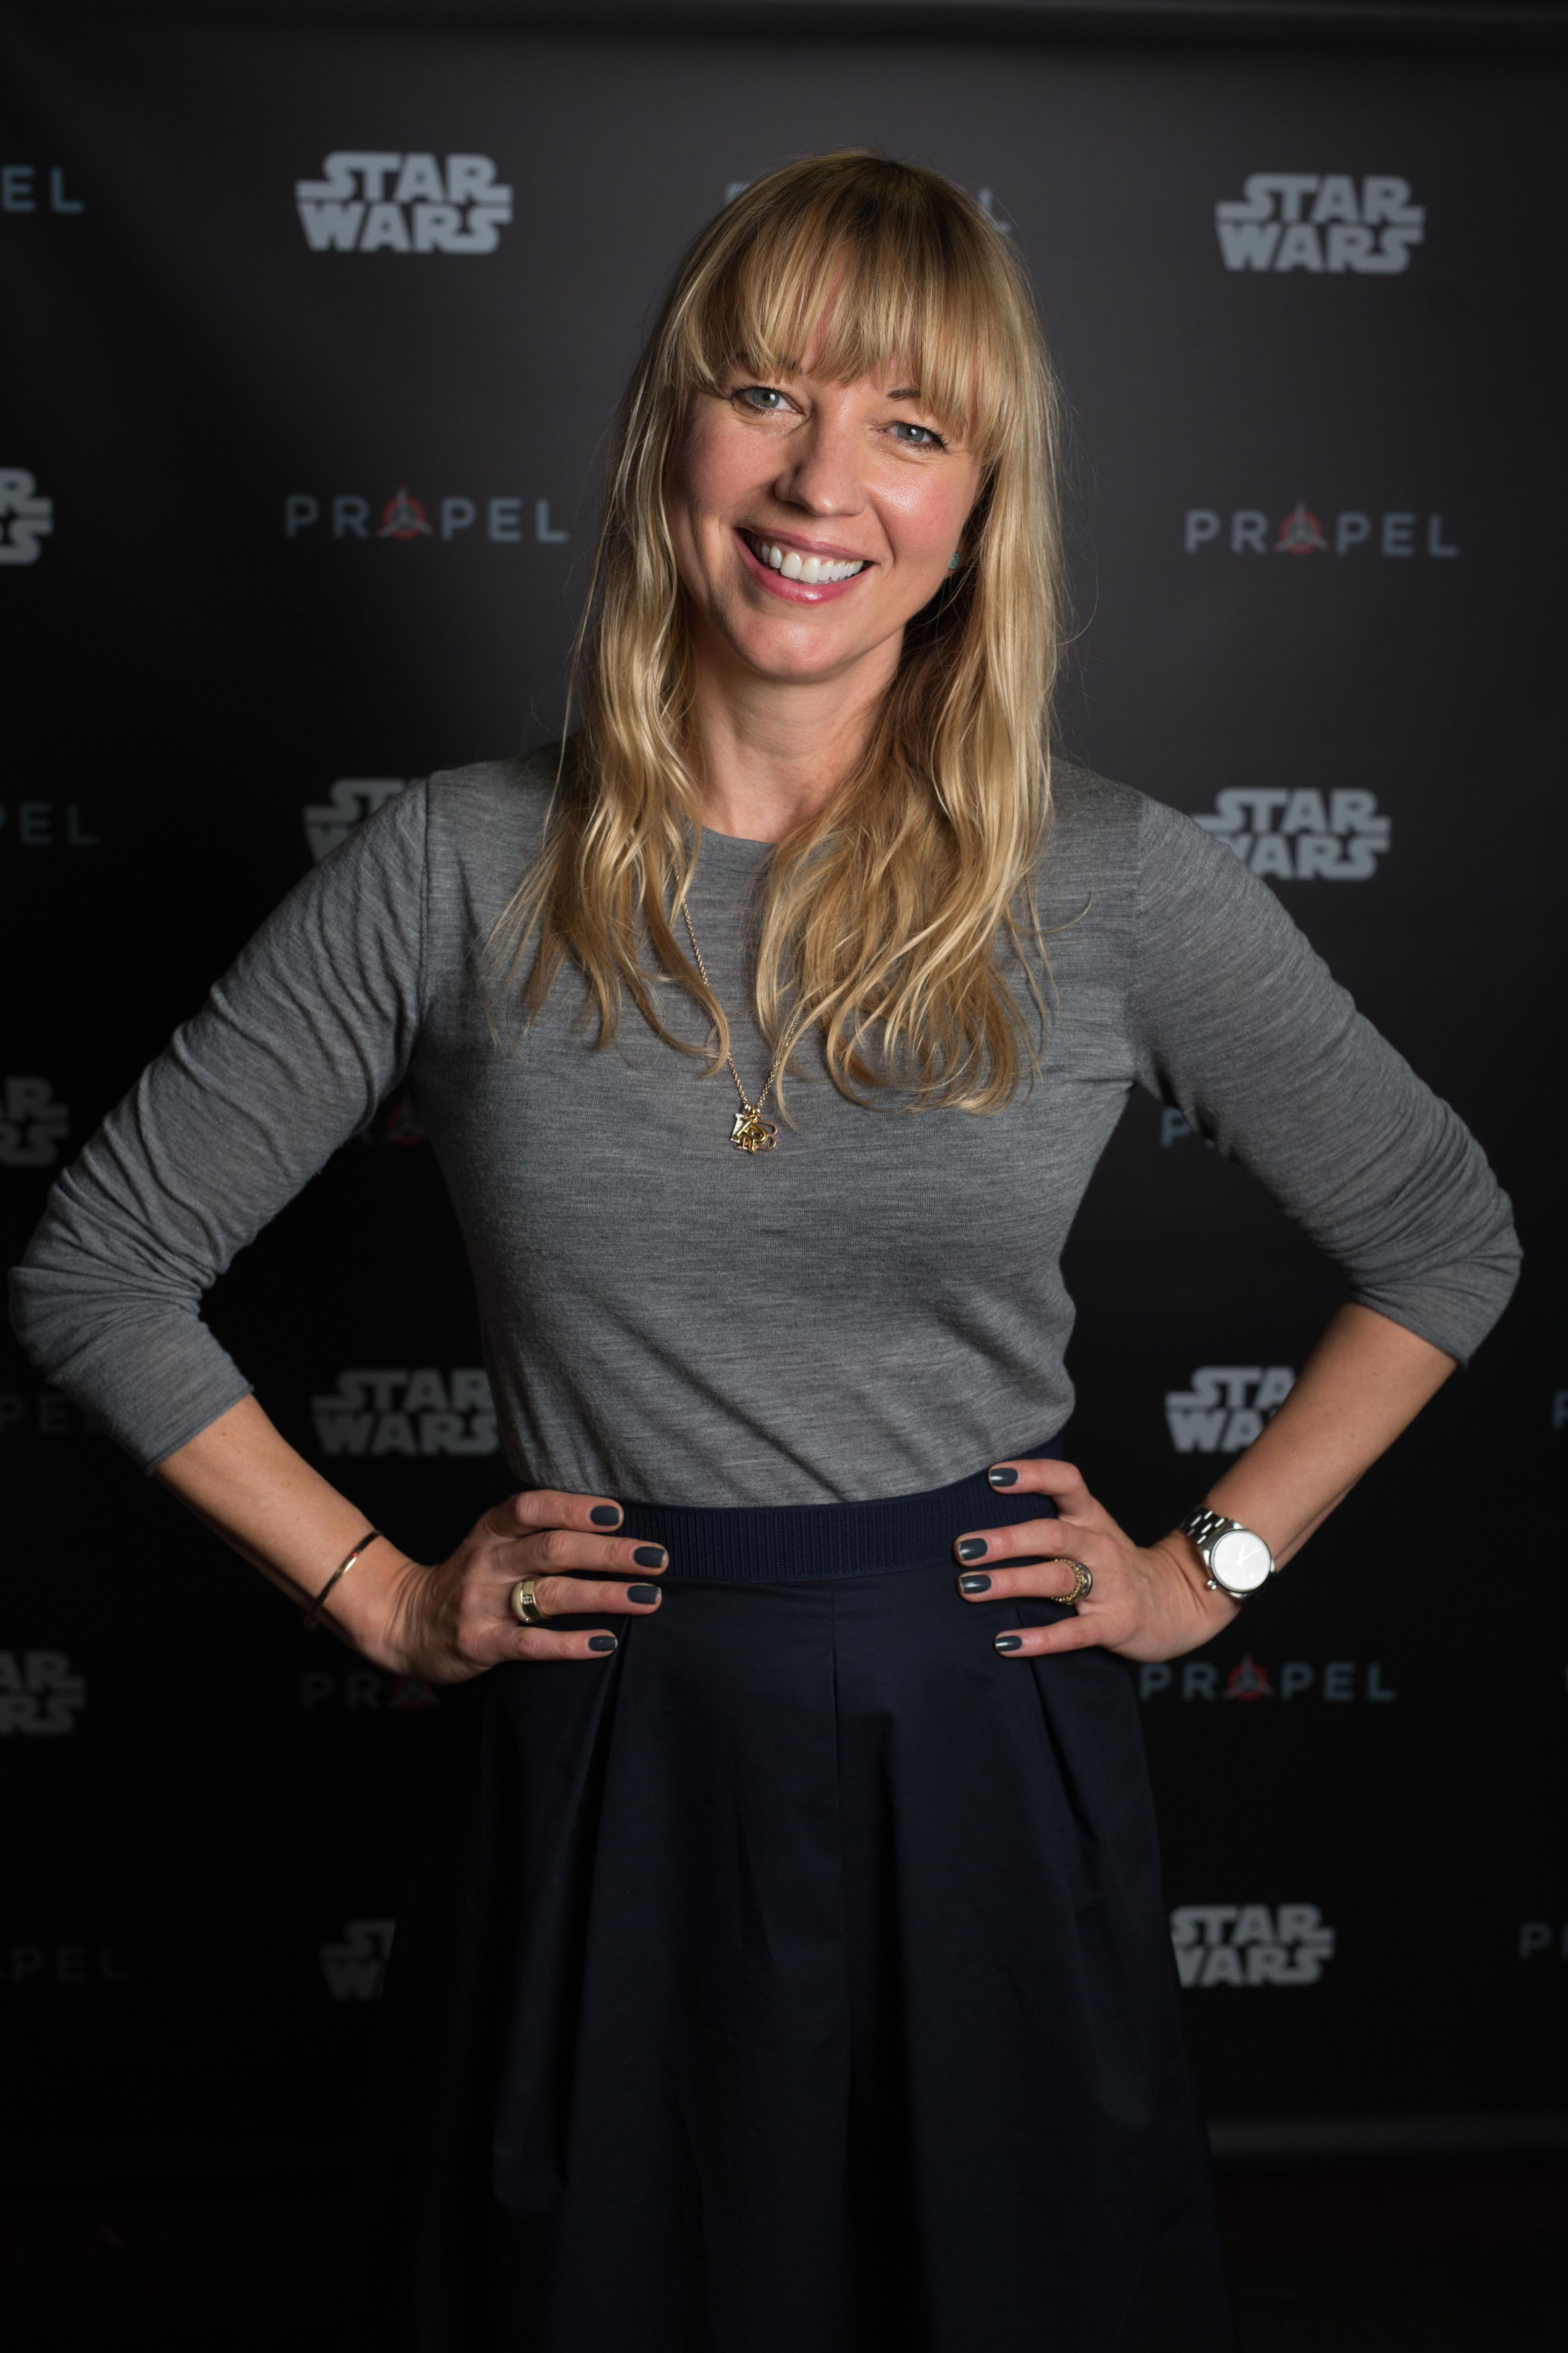 Undated Handout Photo of Sara Cox attending a toy launch in 2016.  See PA Feature WELLBEING Sara Cox. Picture credit should read: David Parry/PA Photo/Handout. WARNING: This picture must only be used to accompany PA Feature. WELLBEING Sara Cox..